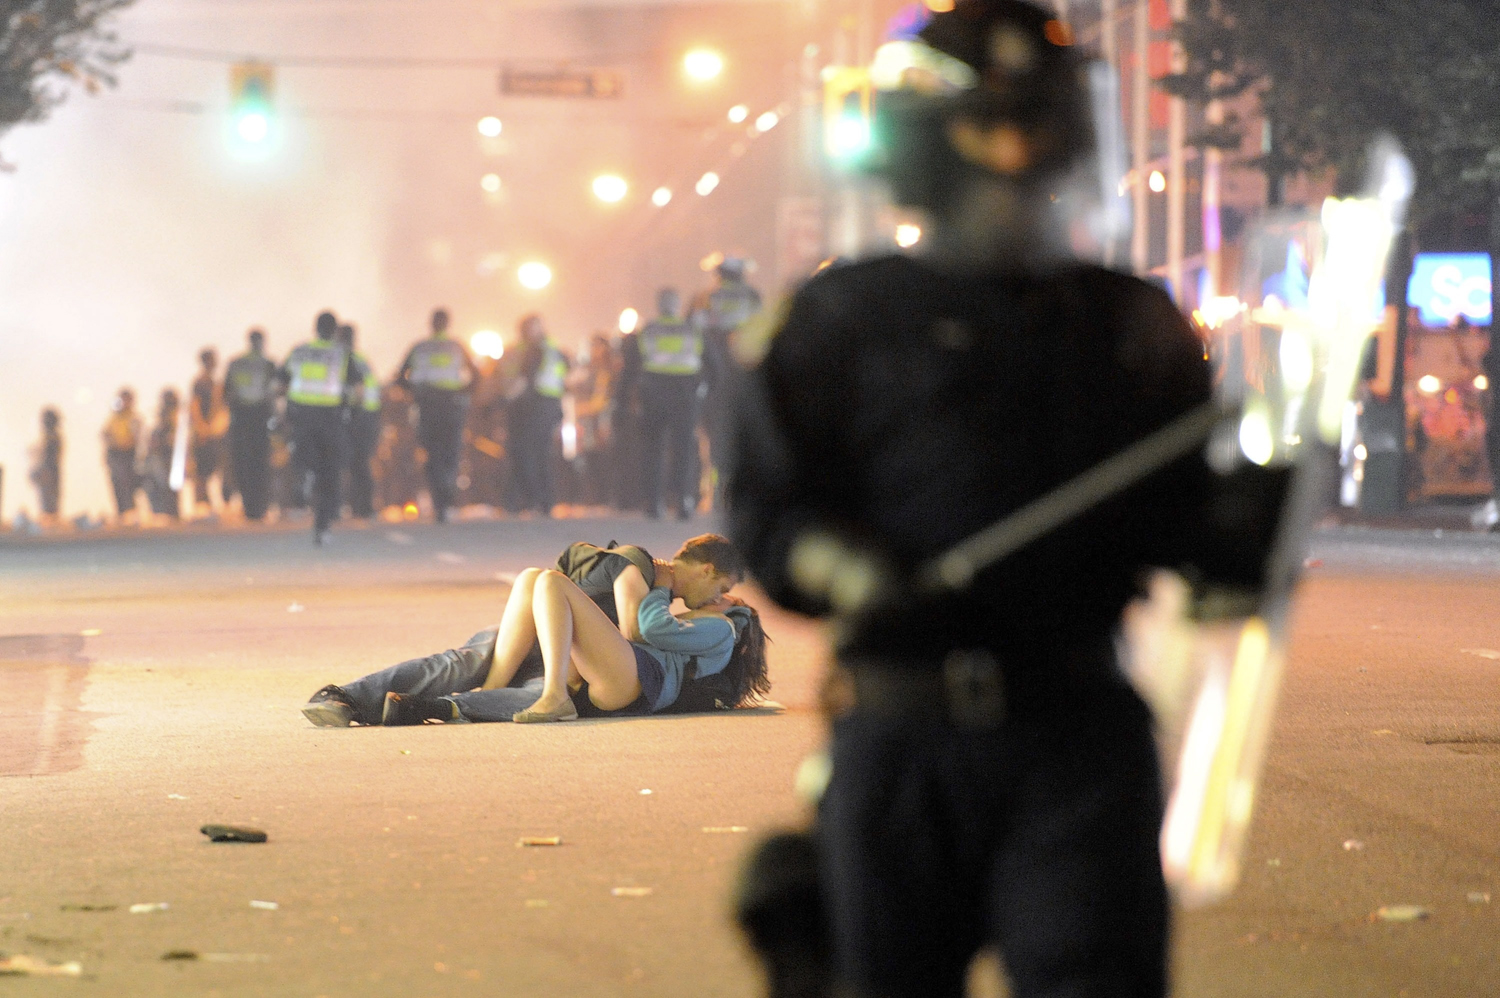 When the Vancouver Canucks lost game 7 of the Stanely Cup finals to the Boston Bruins on their home ice on June 15, local fans took out their frustration in the streets, by rioting, looting and setting fire to cars. During the rampage, Getty photographer Rich Lam captured this image of one couple laying on the ground, seemingly engaged in a romantic moment. The surprising juxtaposition and its metaphorical resonance—make love, not war—made it an internet sensation in the days after it was released.                                                              At first, it was suggested that the photo was a fake, but Lam was able to provide before and after frames that disproved that; but even after the fact, he was not entirely sure what he had witnessed.  It was complete chaos,  he said. Eventually, it became clear that the young woman, later identified as Alexandra Thomas, had been knocked down by the surging                               crowd. Her boyfriend a 29-year-od Australian named Scott Jones had come to her aid. Part of comforting her, the couple explained on a Today show appearance a few days later, was a brief kiss.